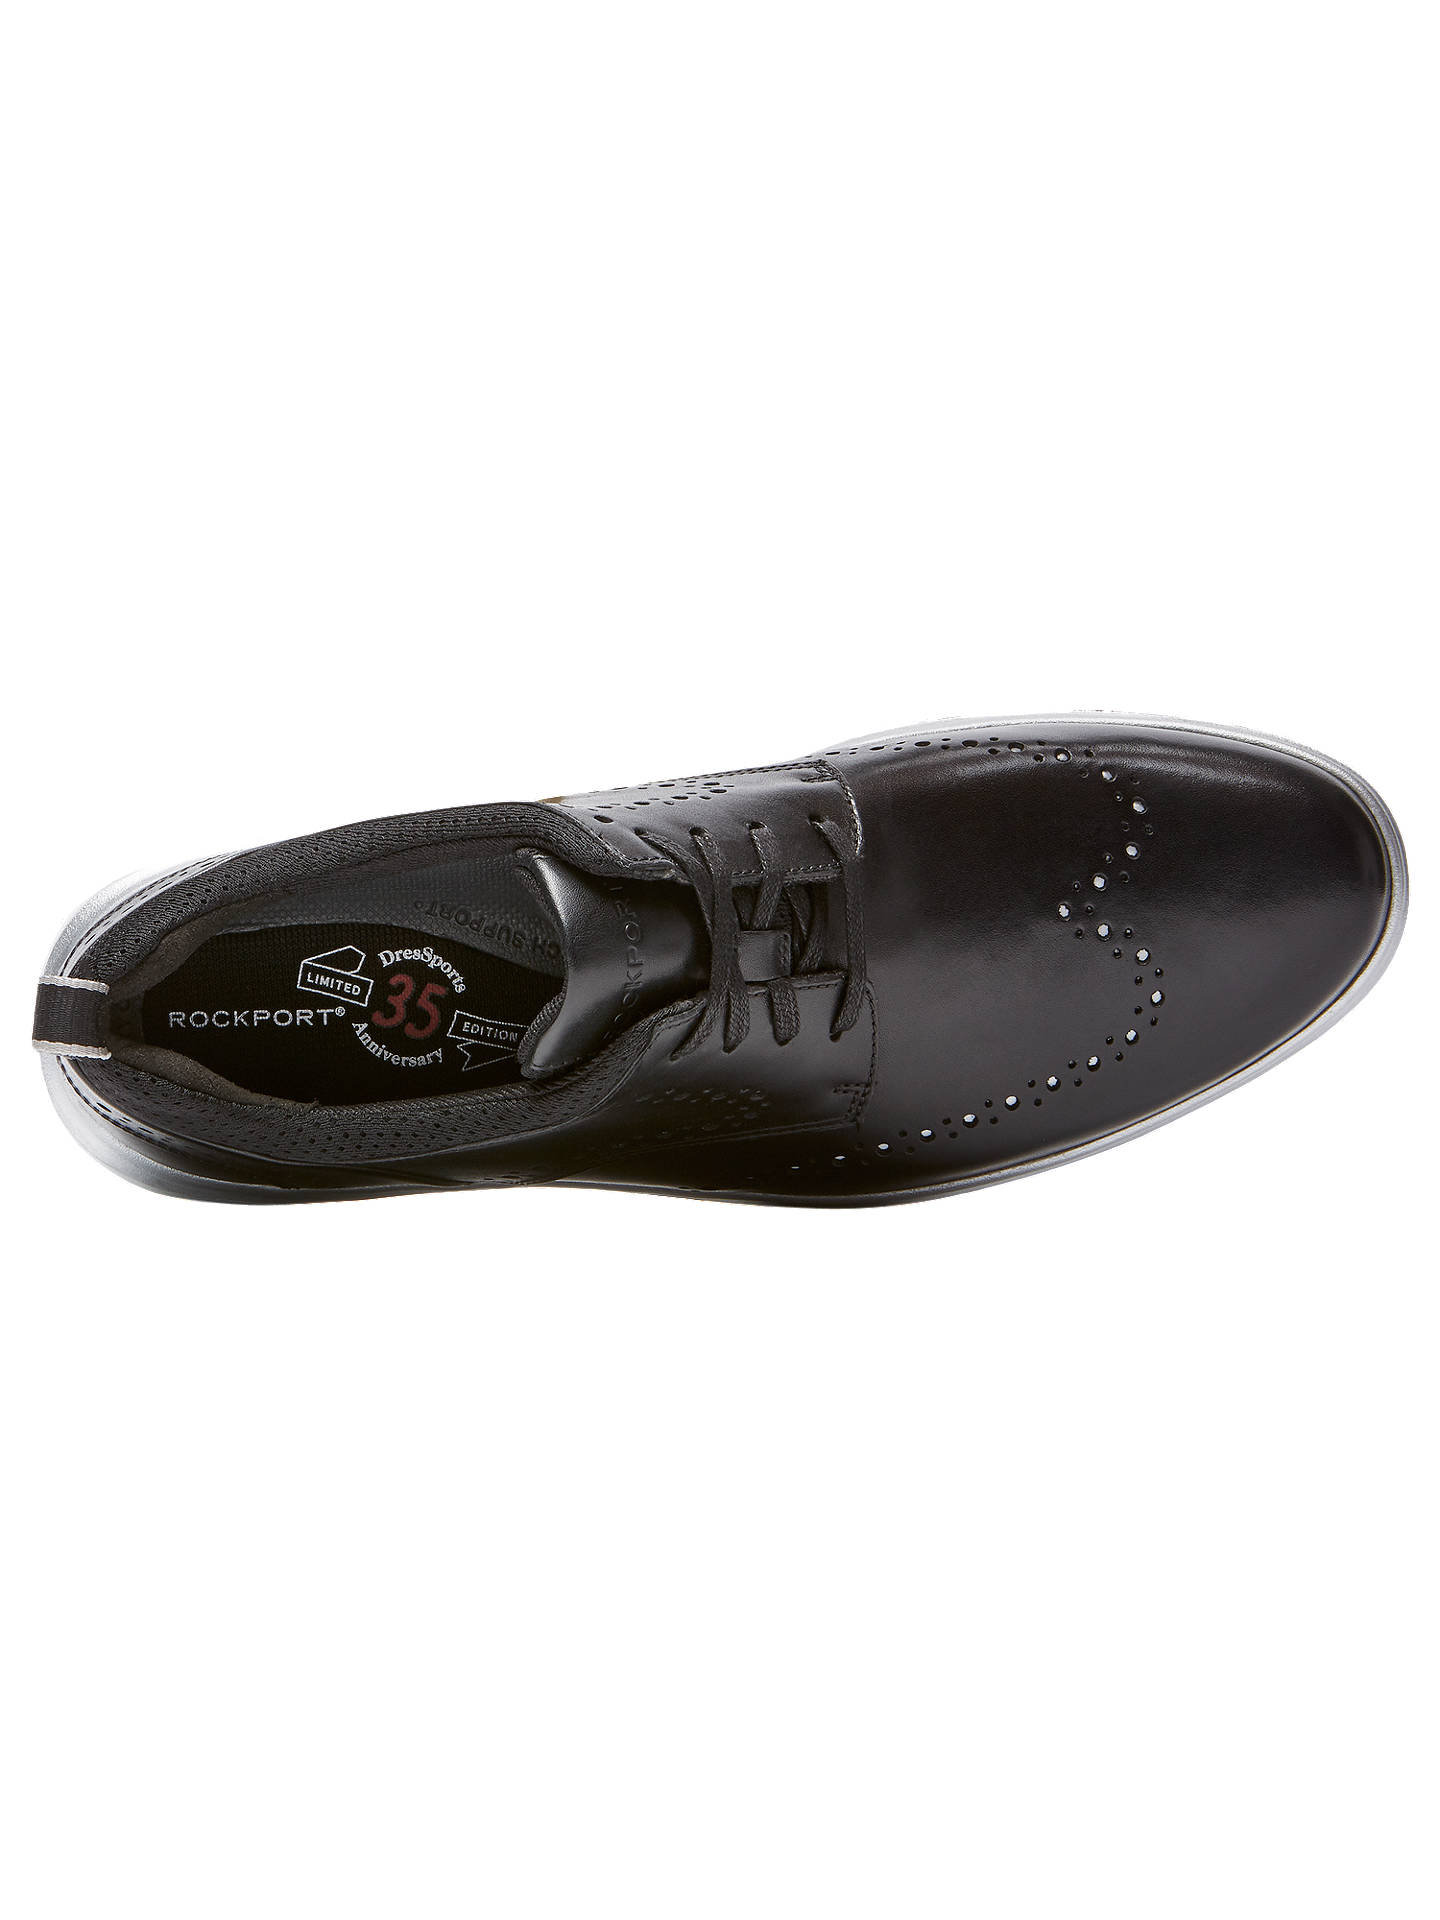 BuyRockport Dressport 2 Fast Marathon Brogues, Black, 9 Online at johnlewis.com